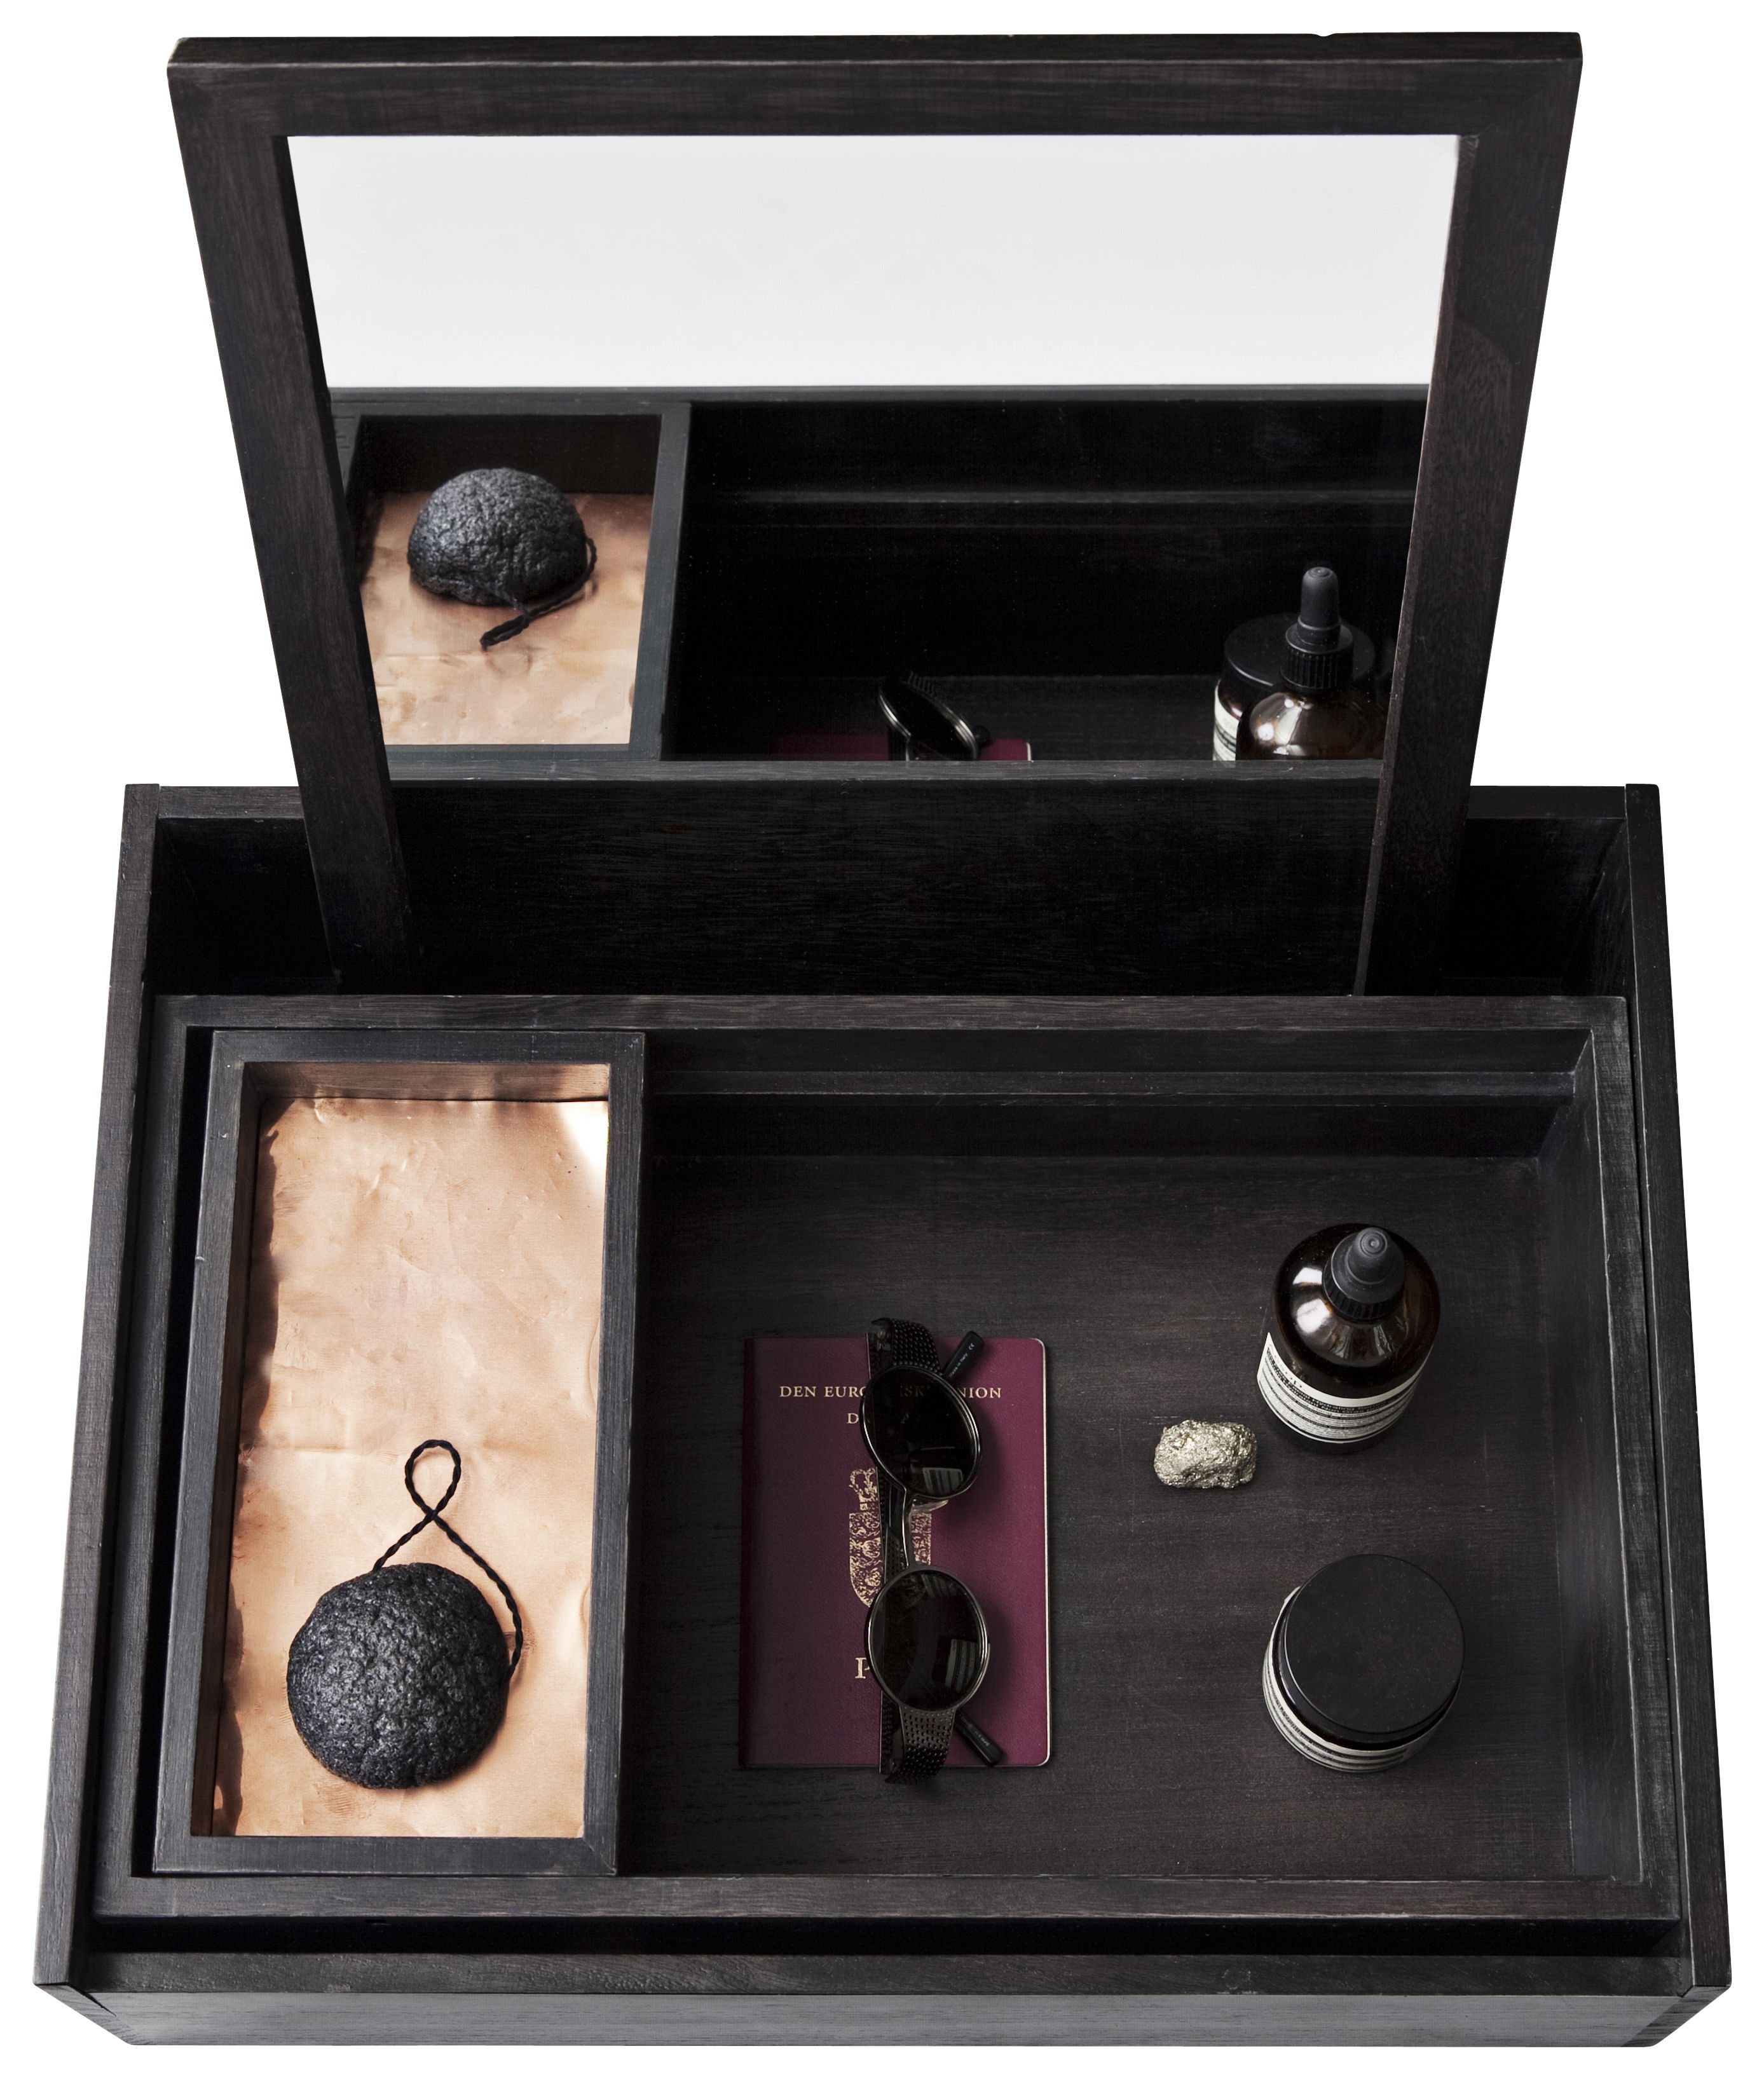 Accessories - Bathroom Accessories - Balsabox Personal Jewellery box by Nomess - Black - Balsa wood